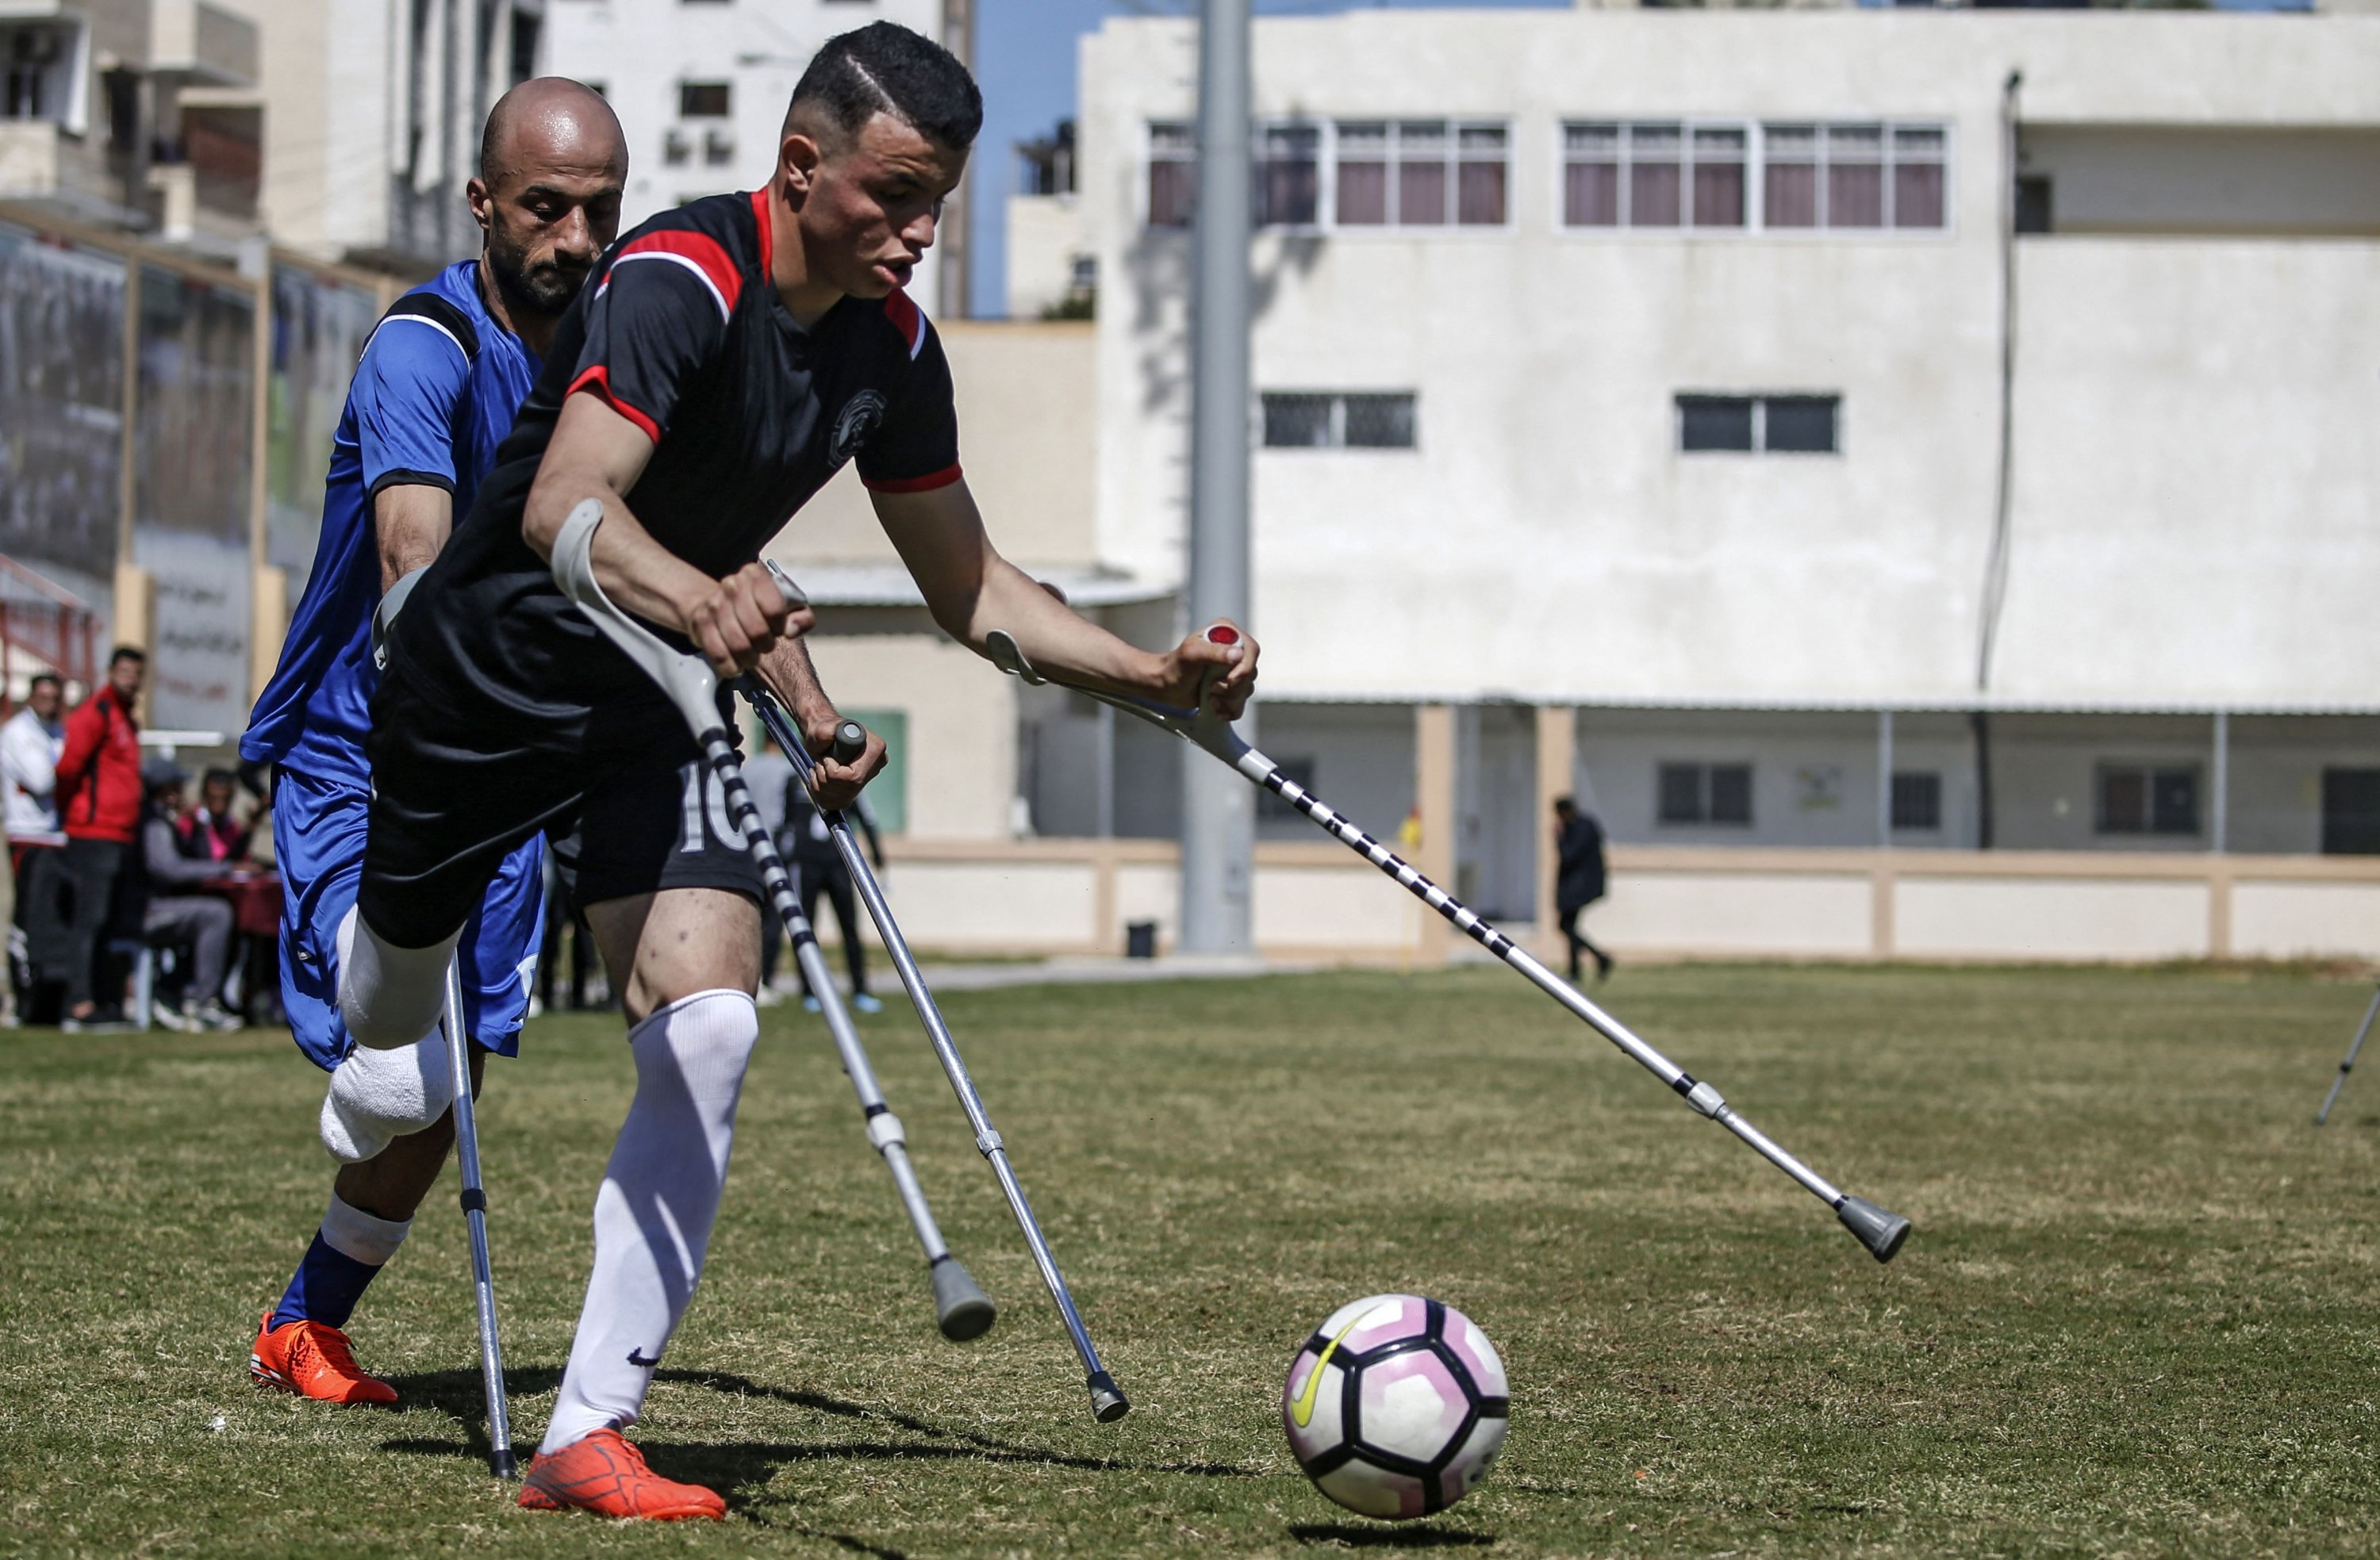 Palestinian players compete during the final of a local football championship for amputees, organized by the International Committee of the Red Cross (ICRC), in Gaza City, March 18, 2021. (AFP Photo)